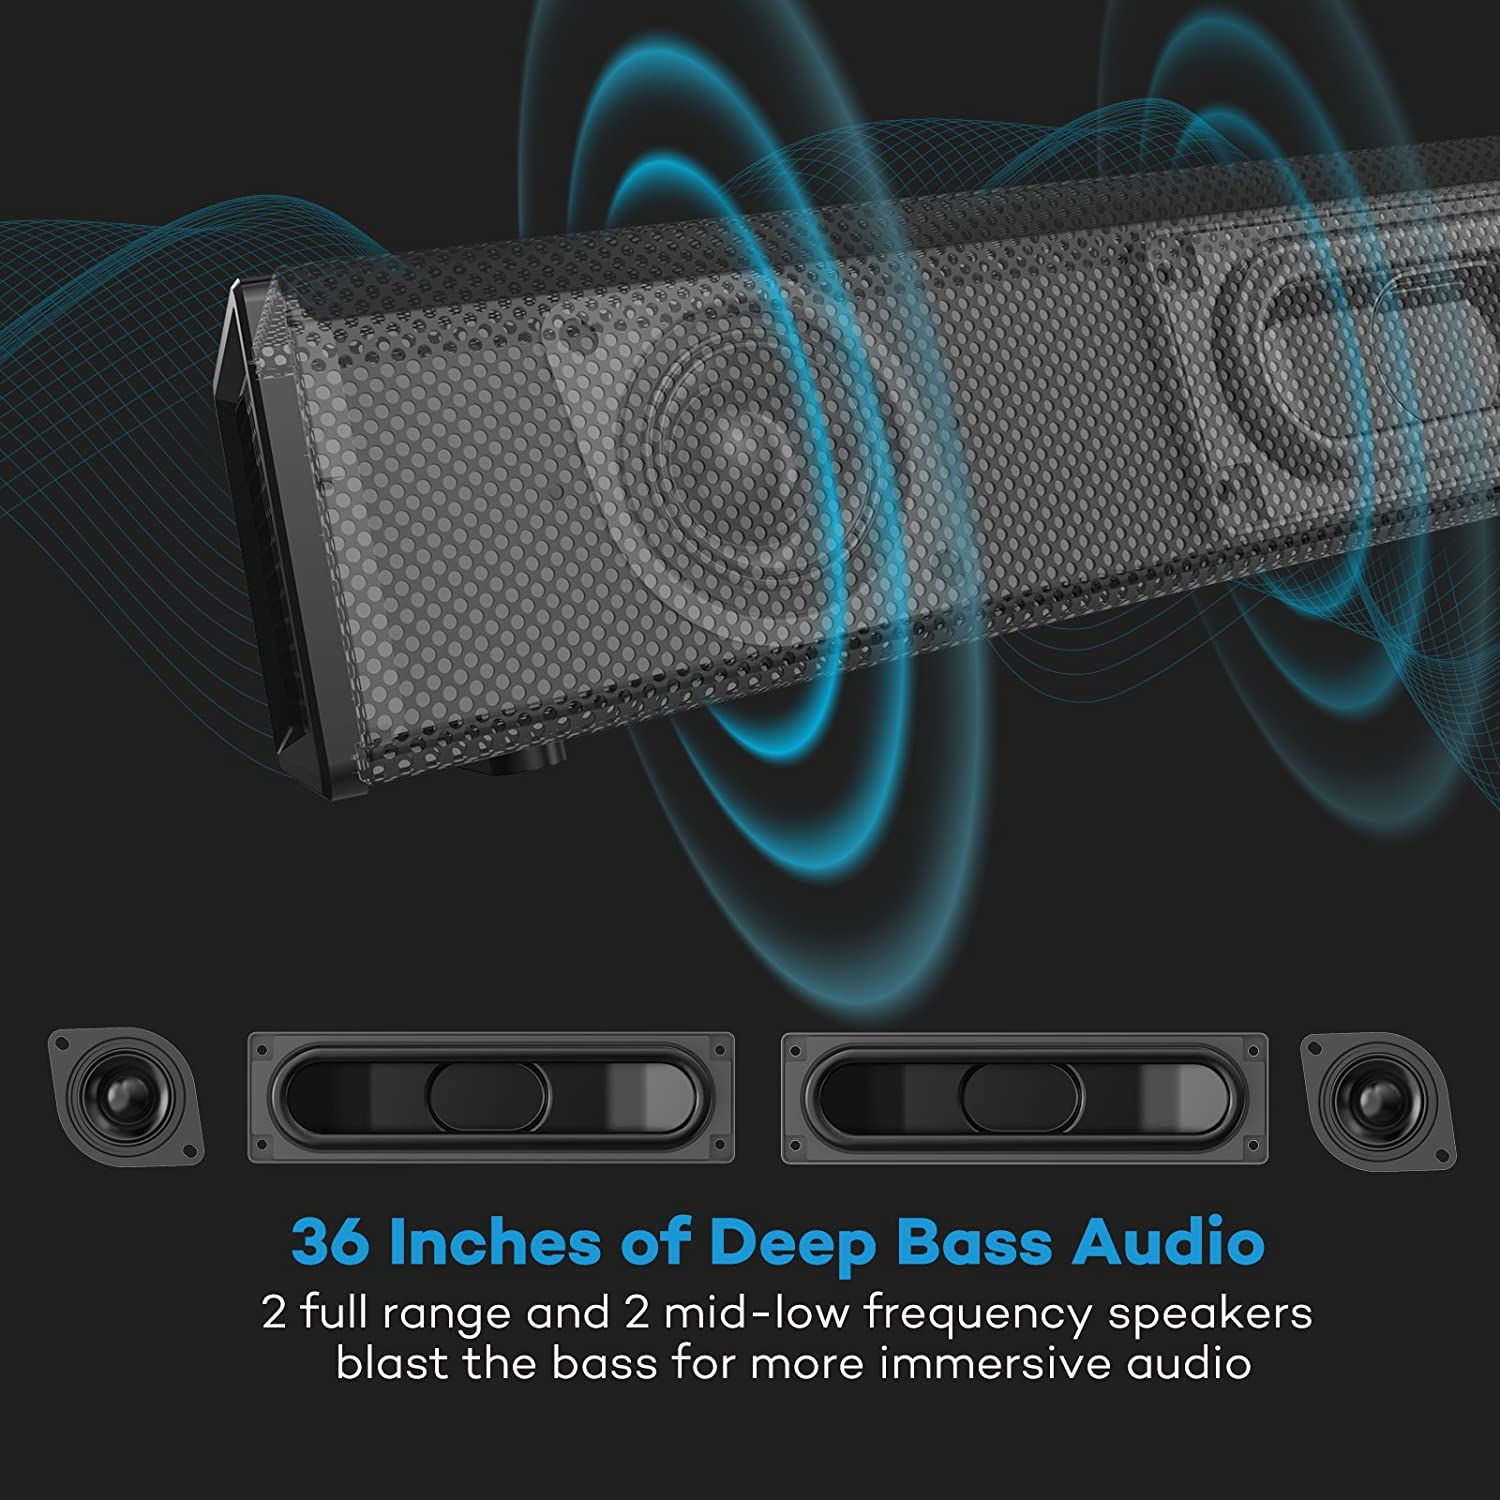 Soundbar, 36-Inch 4 Speakers Strong Bass TaoTronics Sound Bar Wired and Wireless Bluetooth Audio Speakers for TV (Home Theater Surround Sound, ...